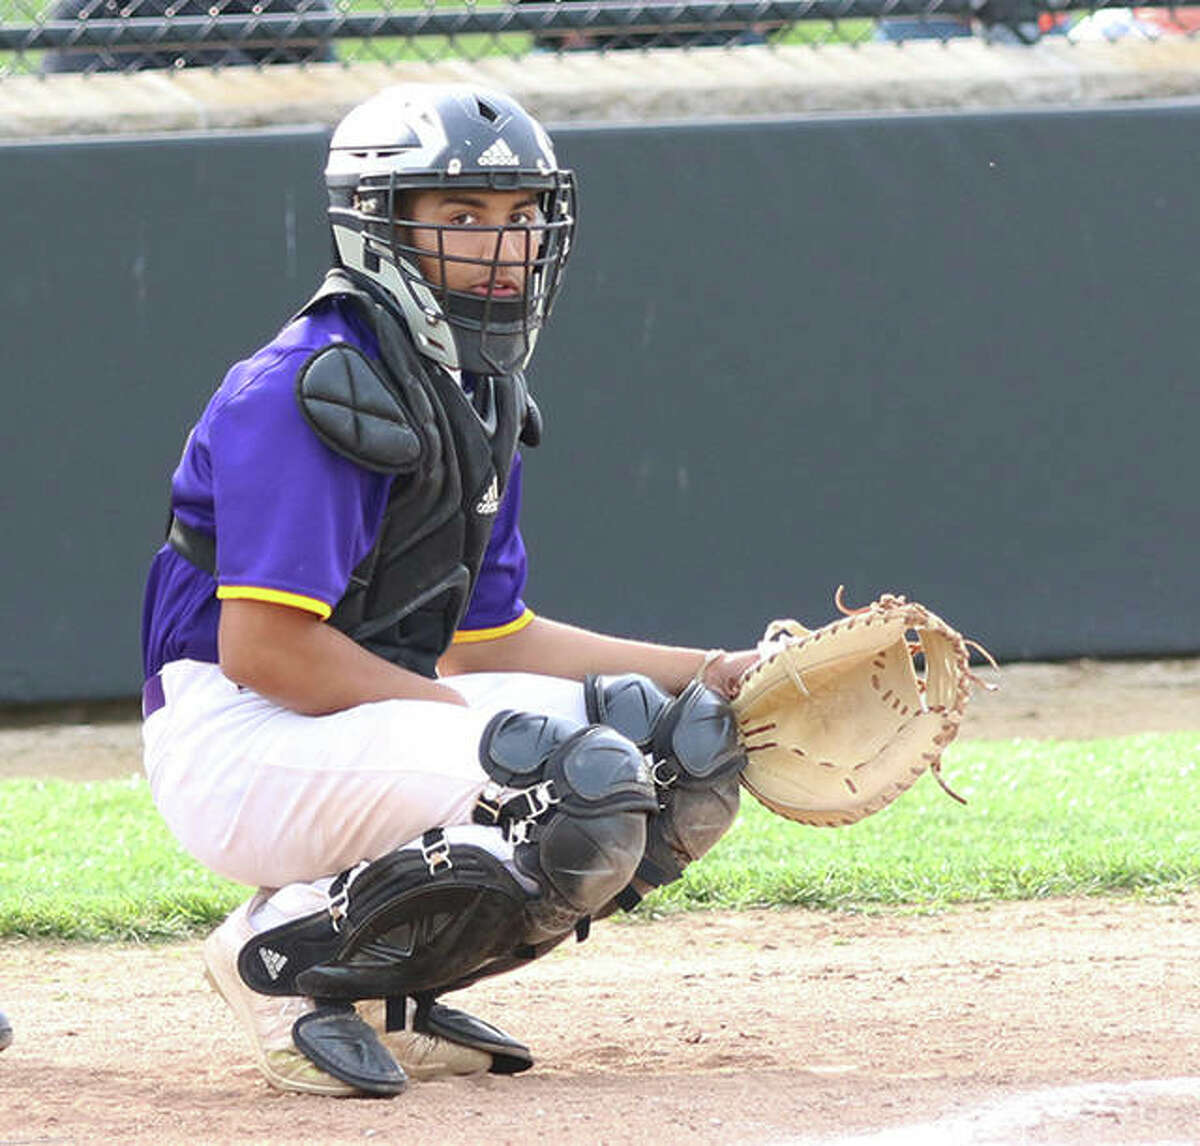 CM catcher Miguel Gonzalez had two hits in the Eagles' Class 3A regional loss Friday at Highland.